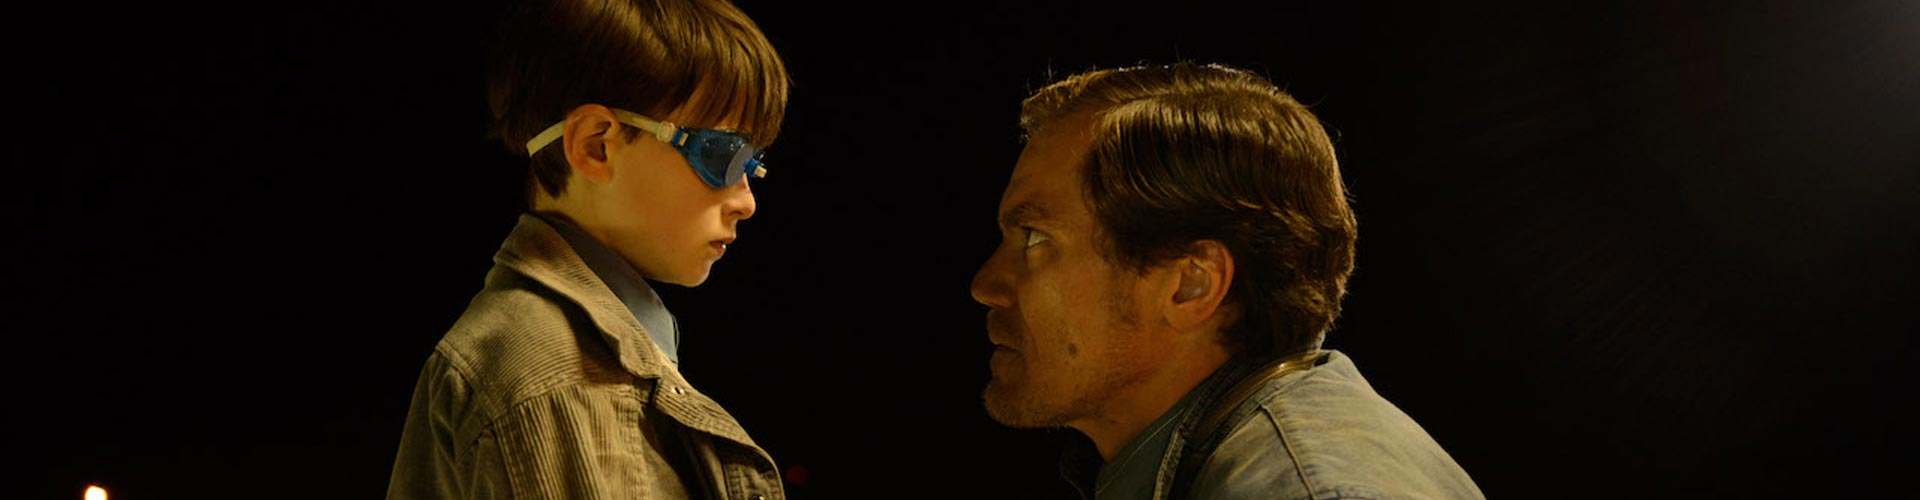 Exclusive interview: Michael Shannon on Midnight Special